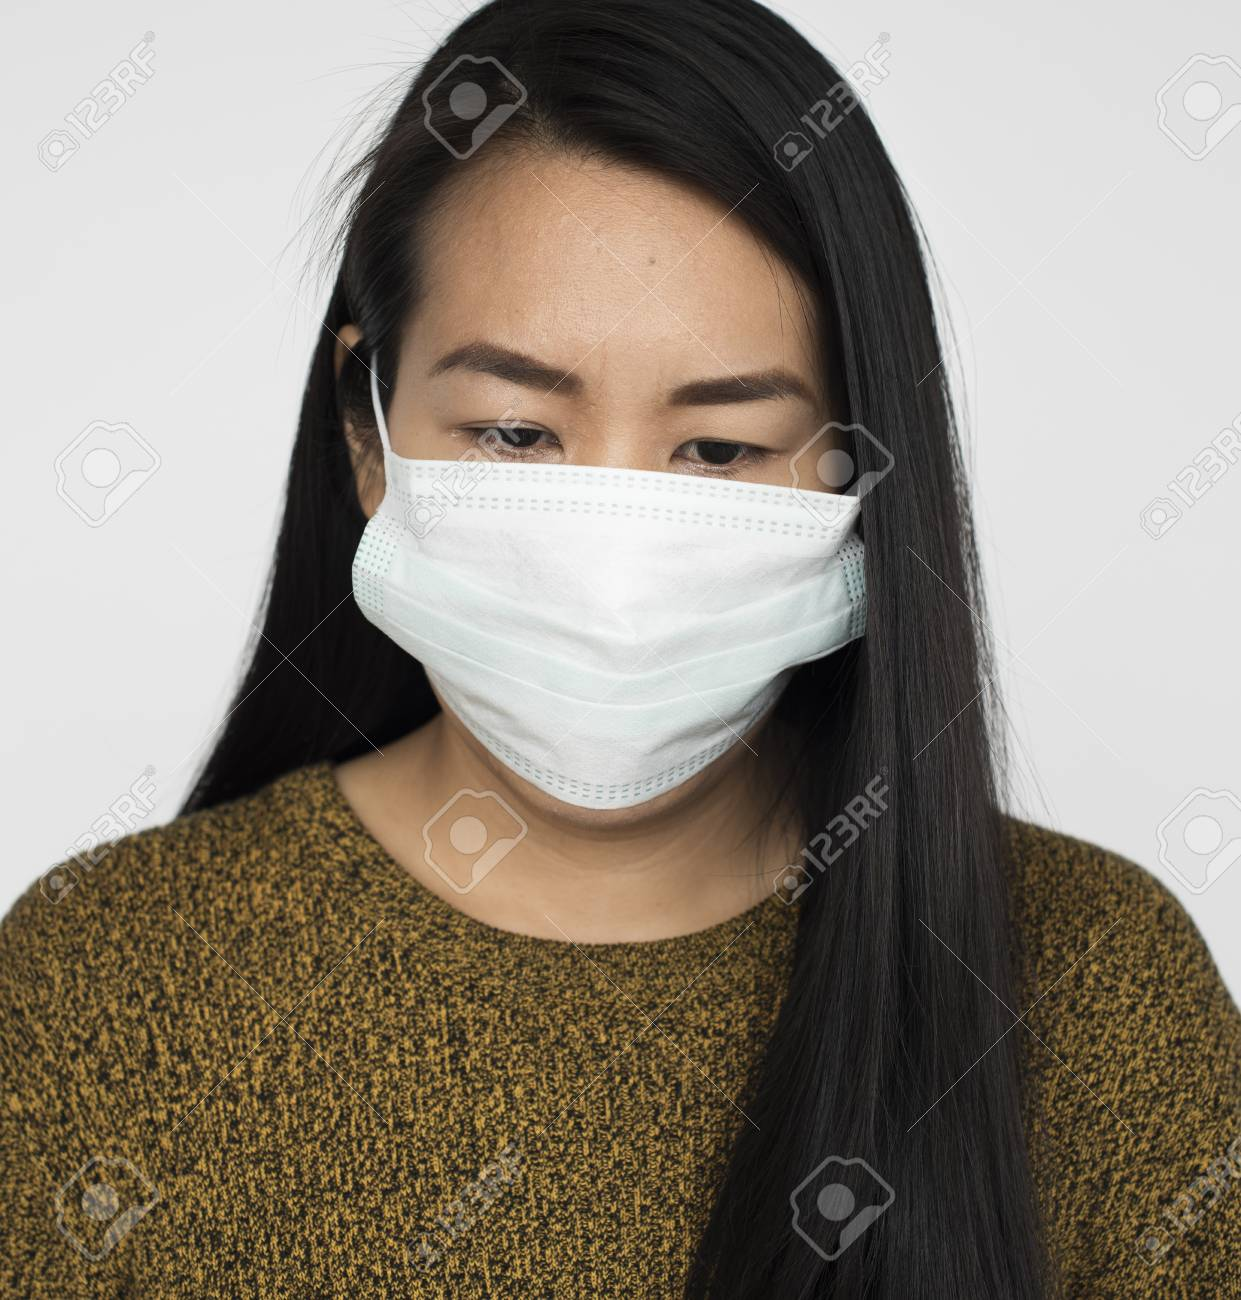 Concept Fever Protective Mask Woman Sickness